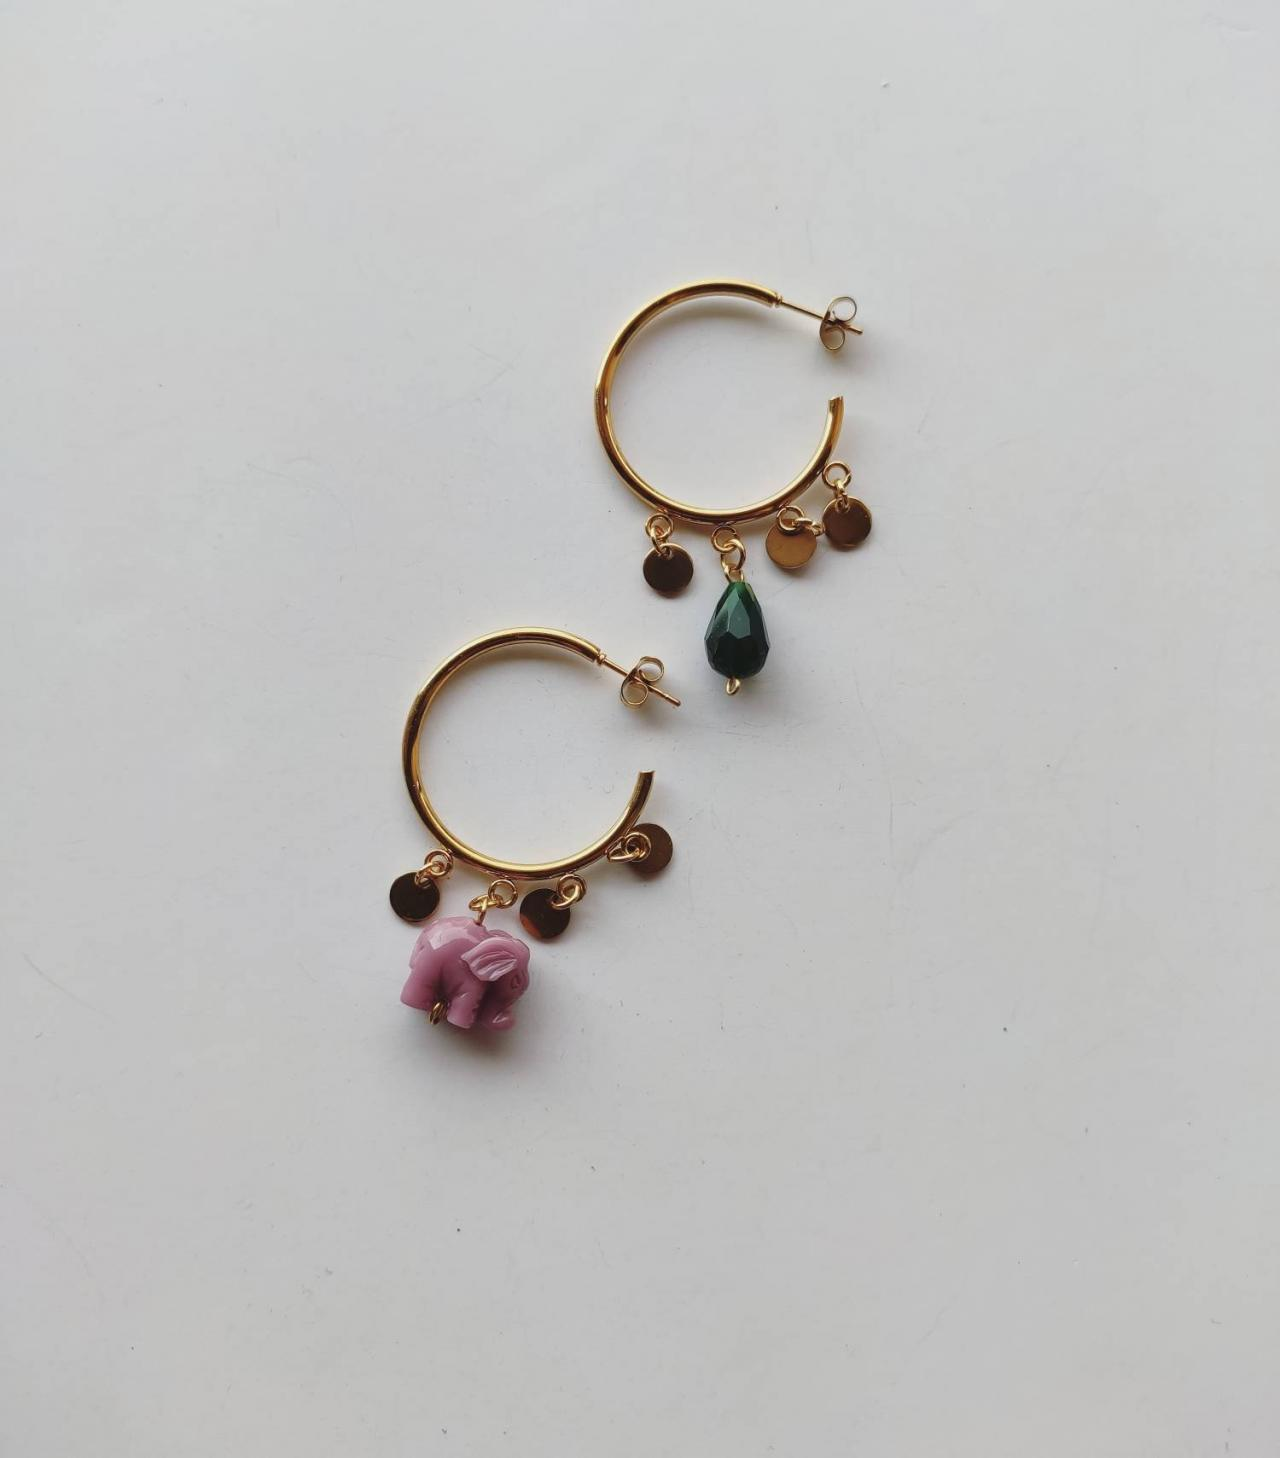 3 cm stainless steel gold hoop earrings with resin elephant, customizable, available in various combinations